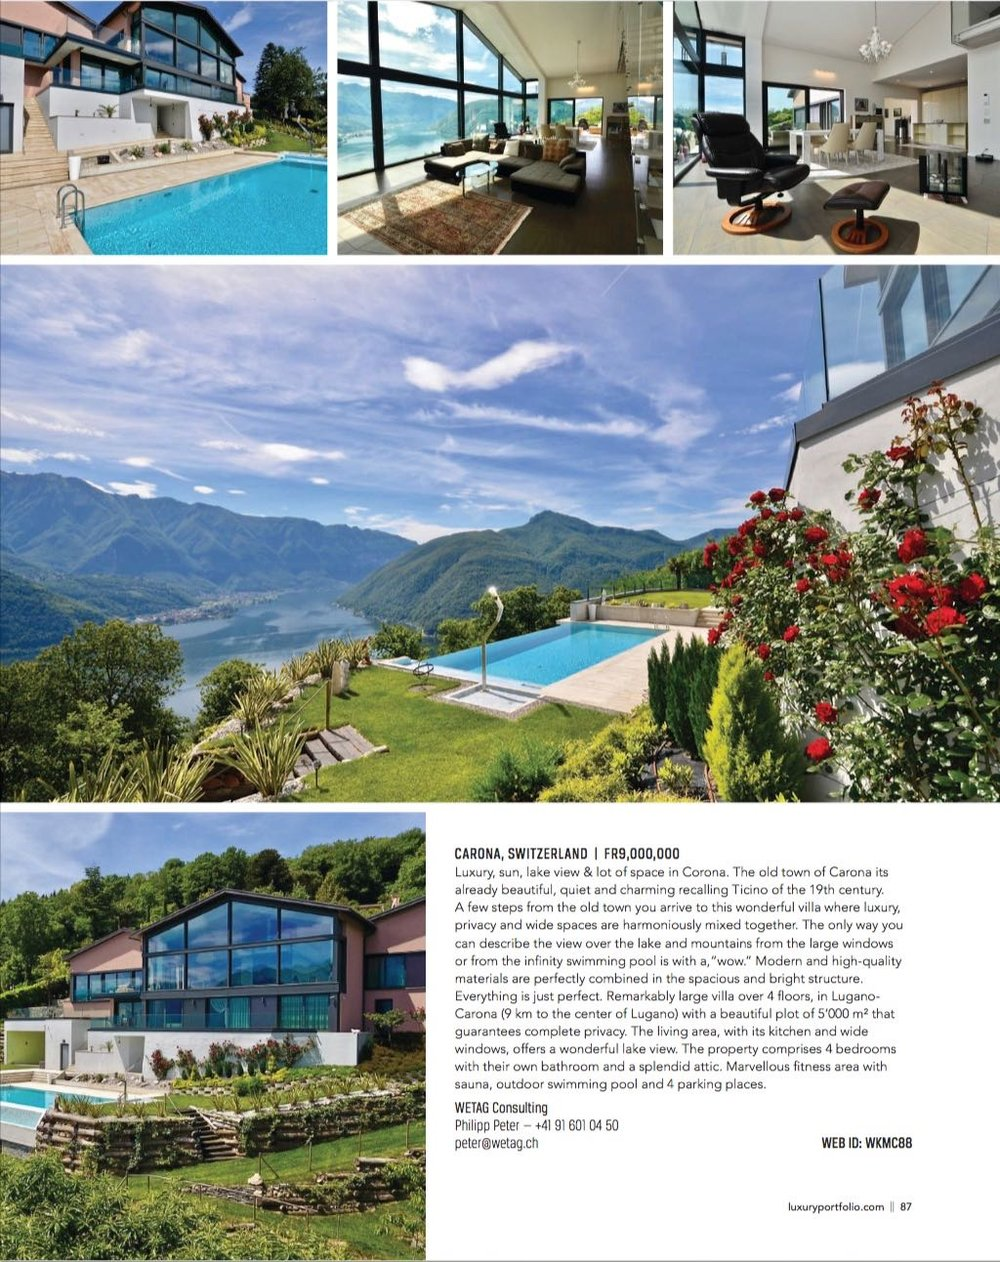 Luxury villa for sale in Carona, Switzerland, listed at Luxury Portfolio Magazine spring 2018 edition